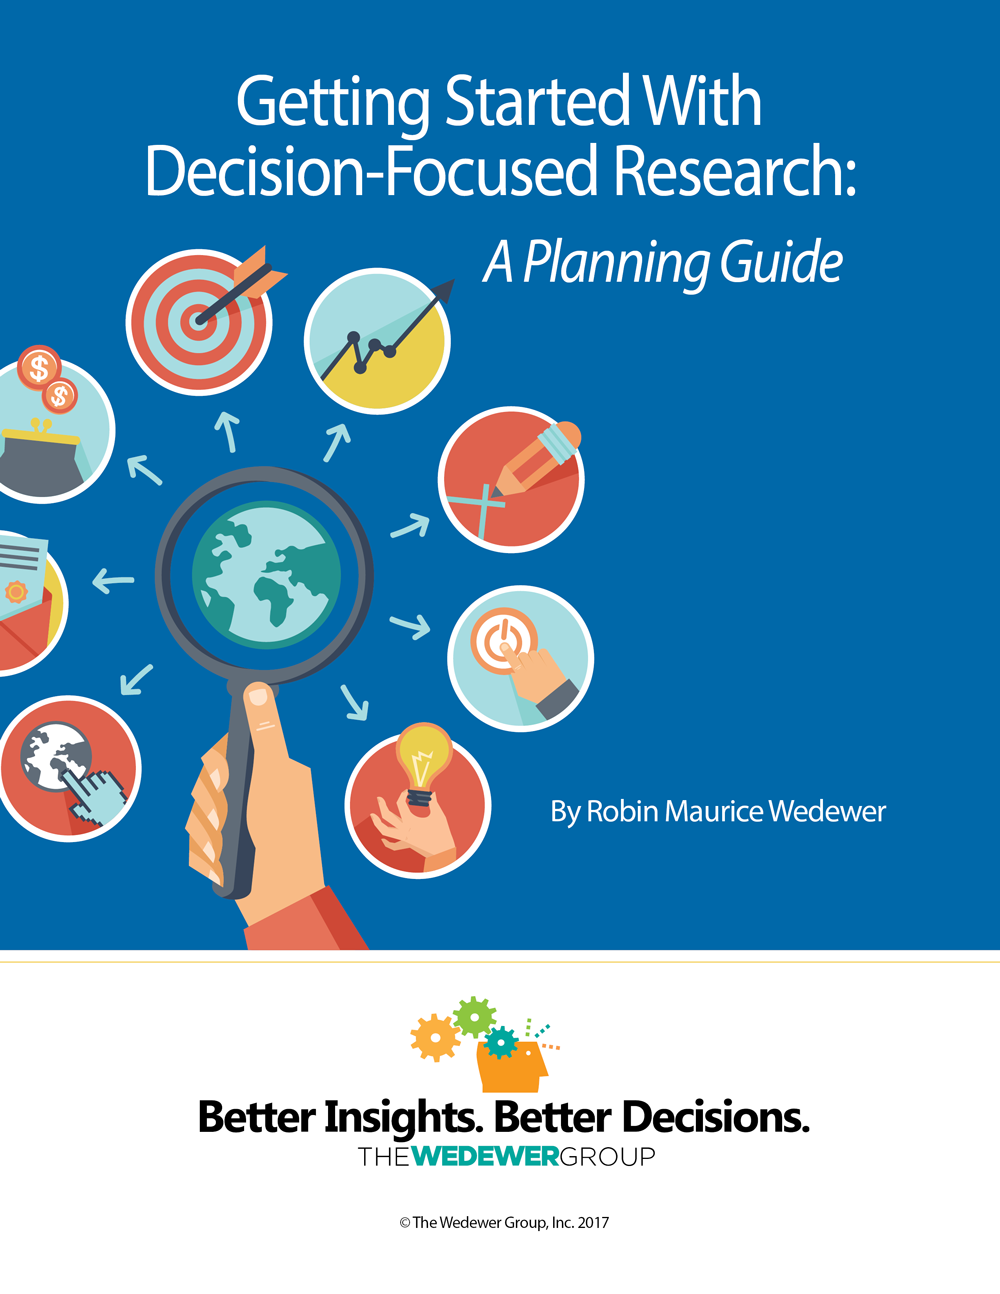 decision focused research guide cover